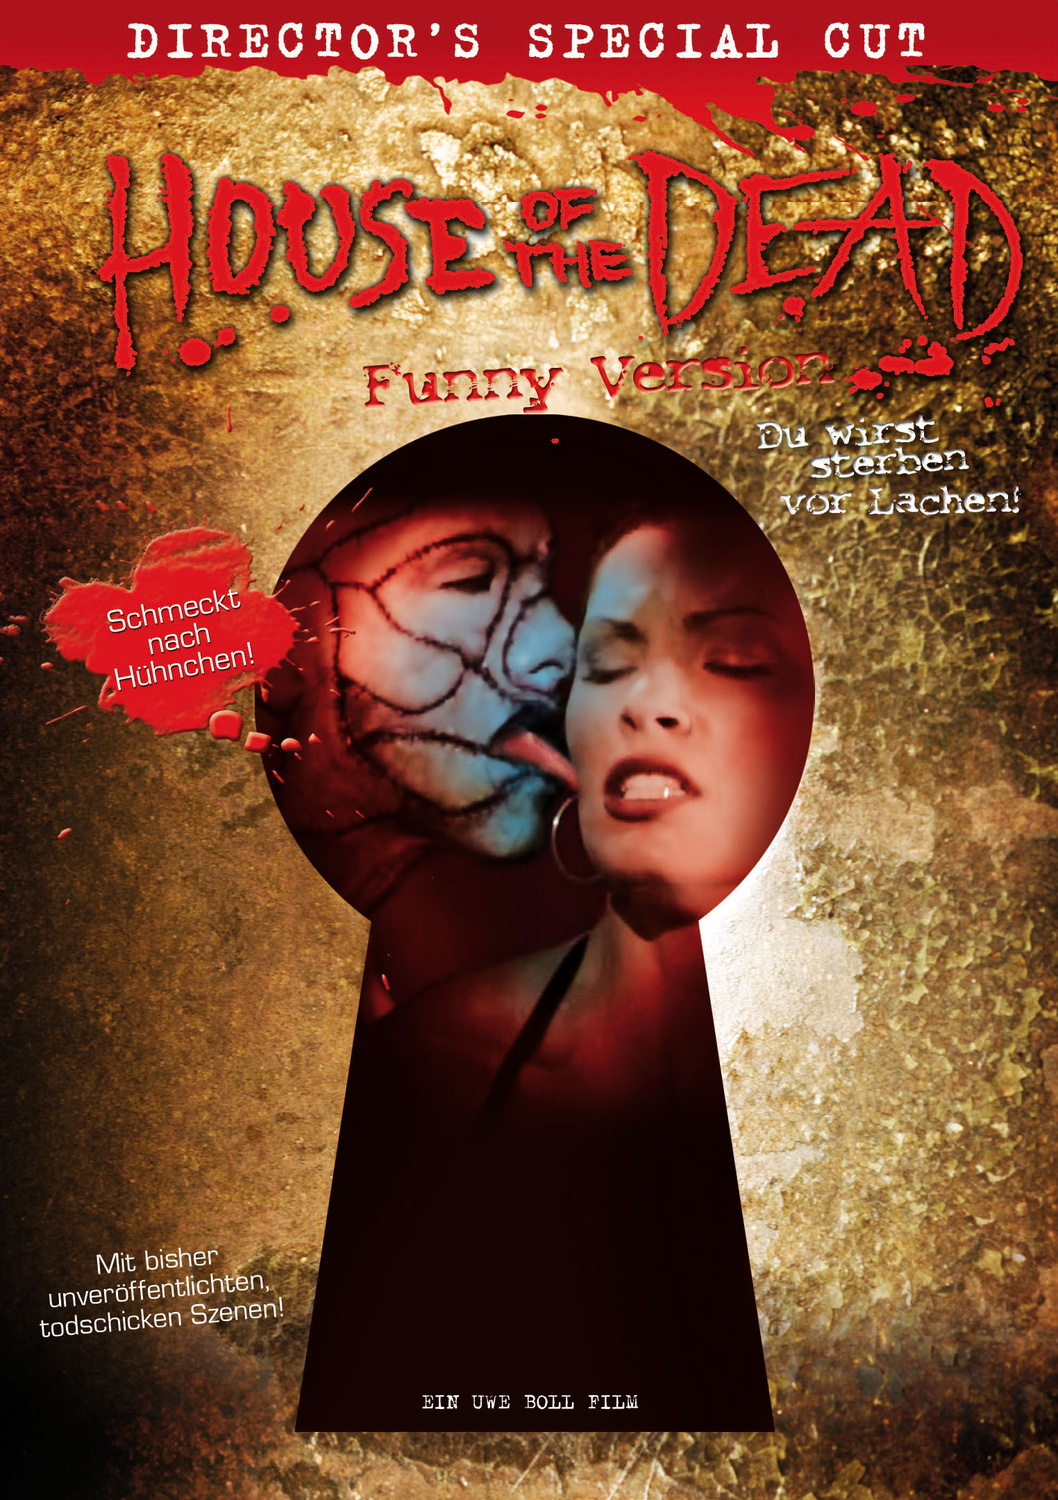 House of the Dead - Funny Version